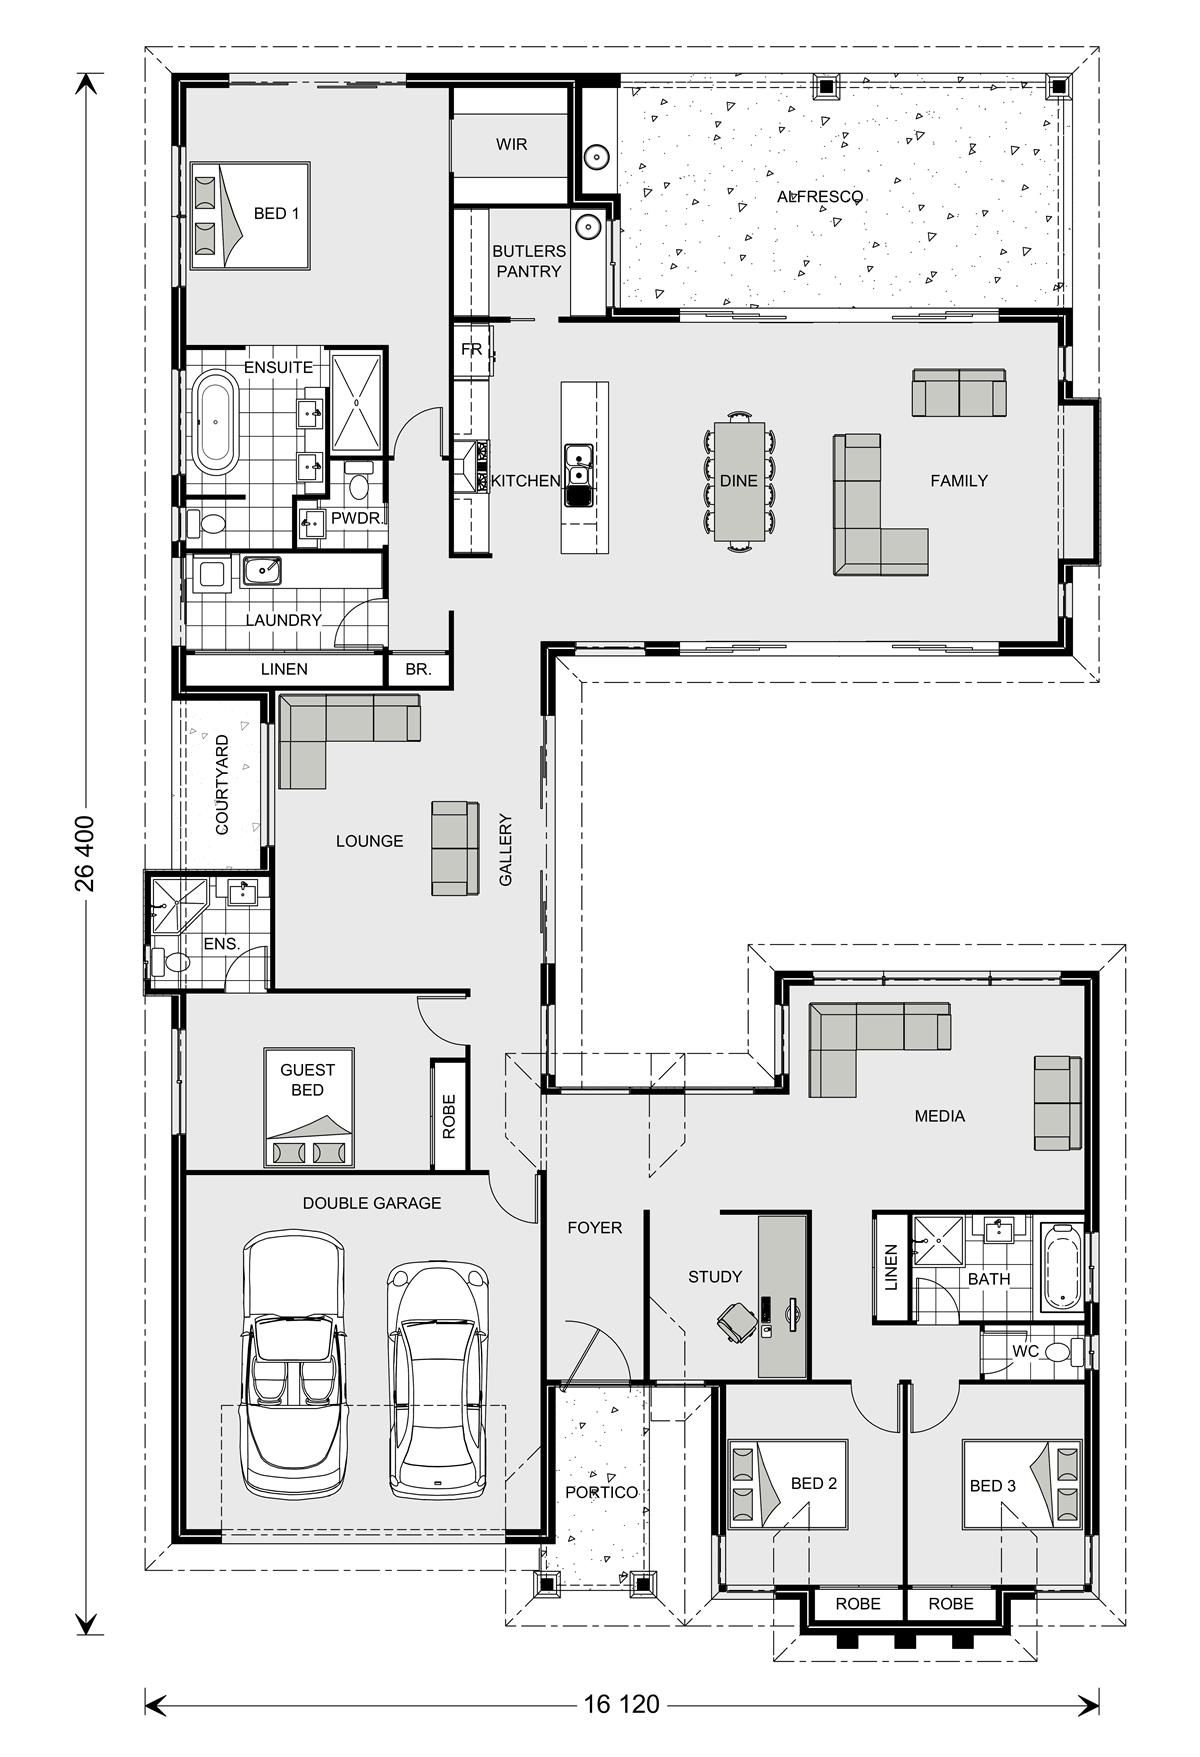 Mandalay 256 Our Designs New South Wales Builder Gj Gardner Homes New South Wales Floor Plans House Blueprints New House Plans